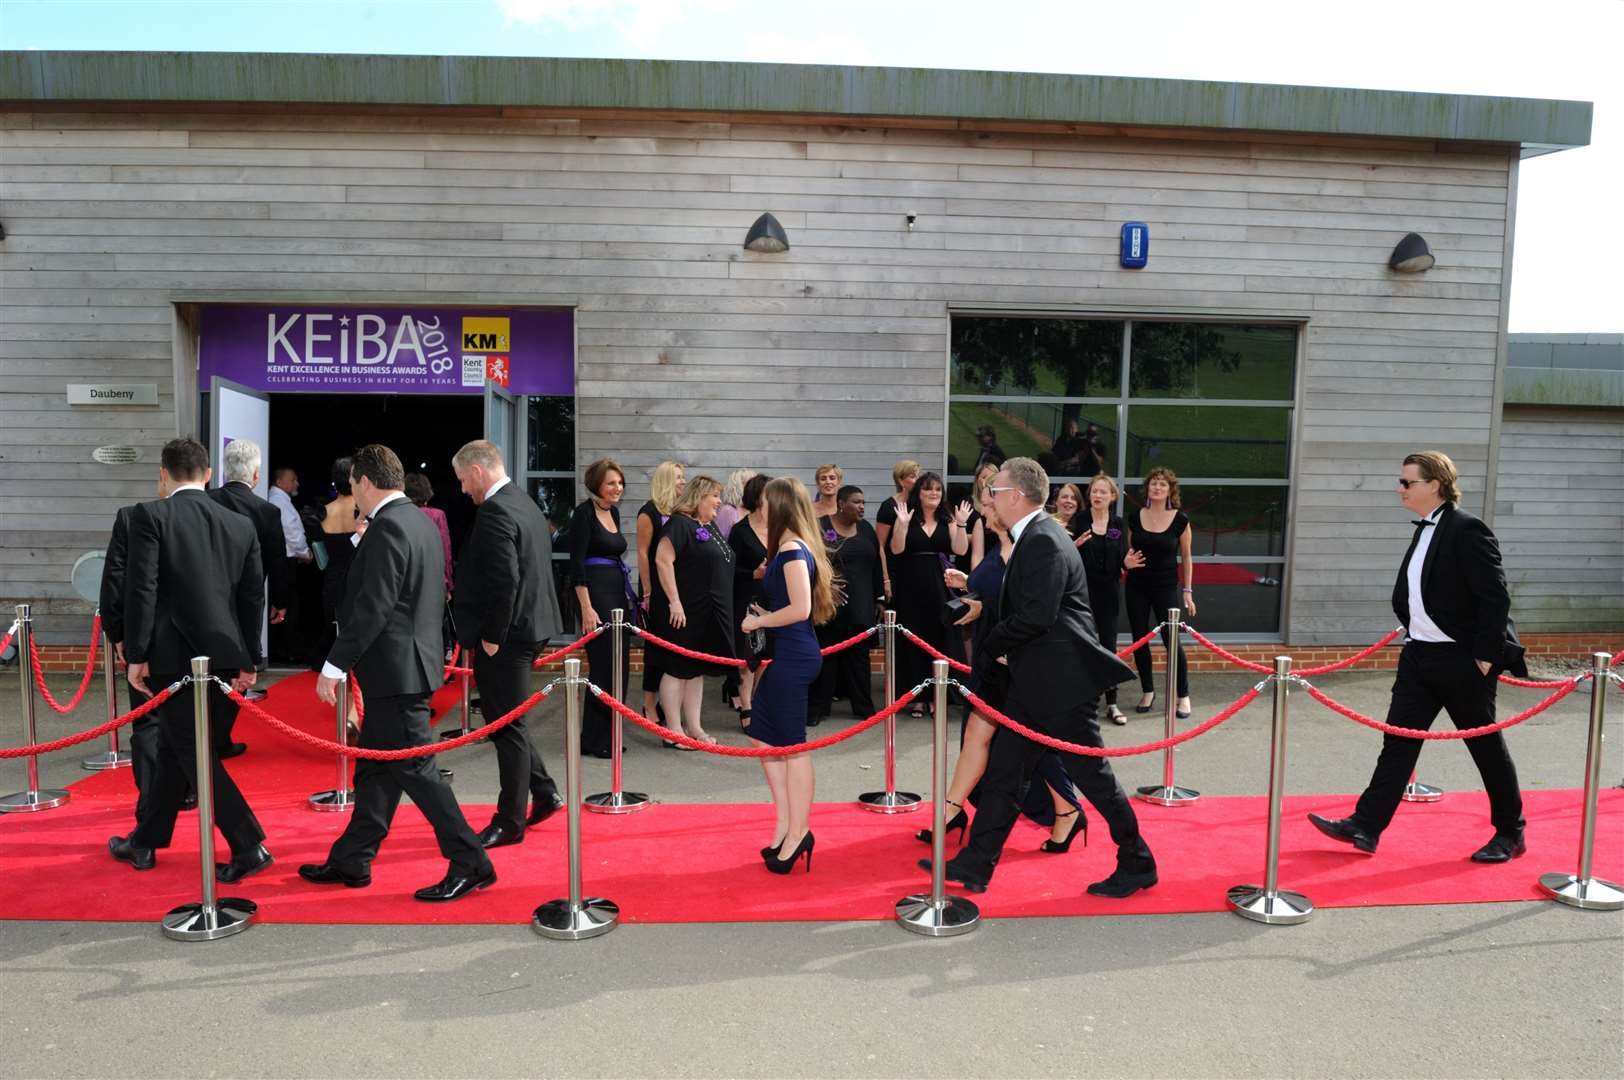 The Kent Event Centre will host the awards night later this year